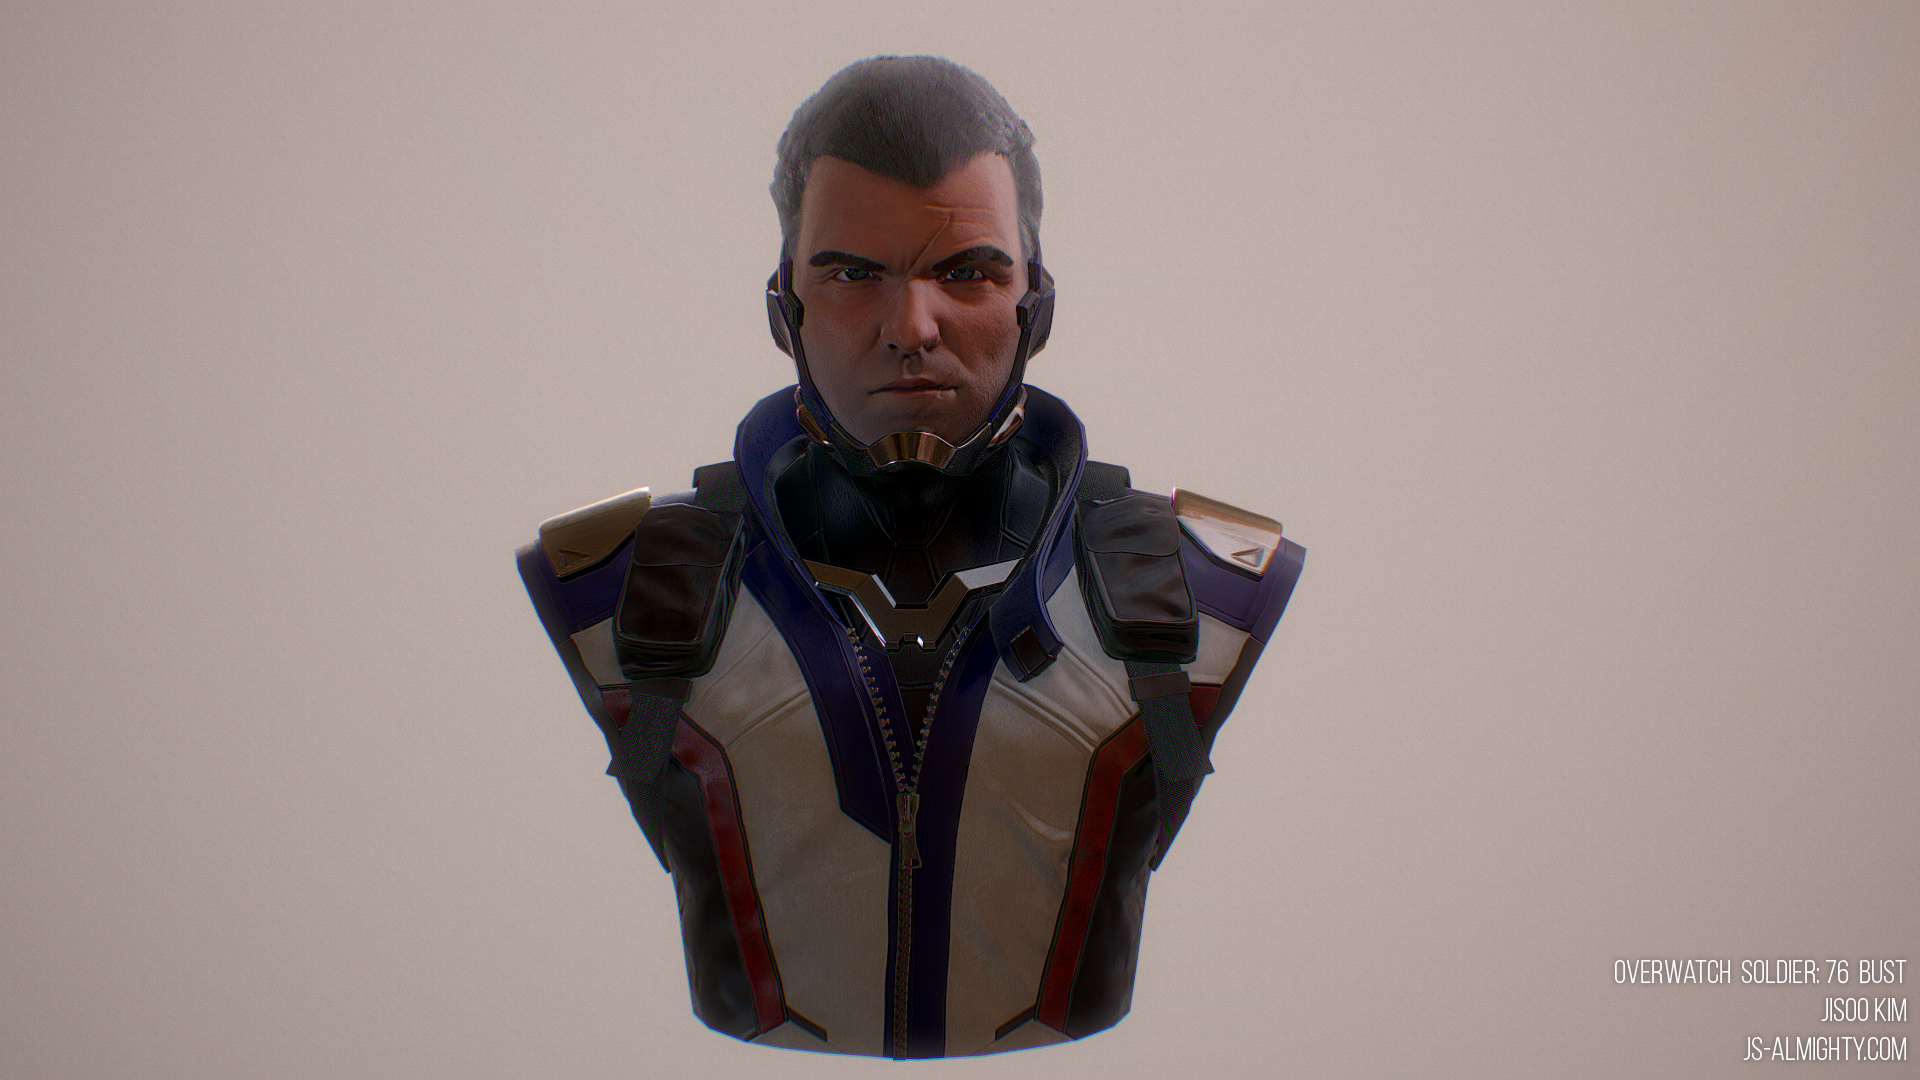 Overwatch Soldier: 76 Bust